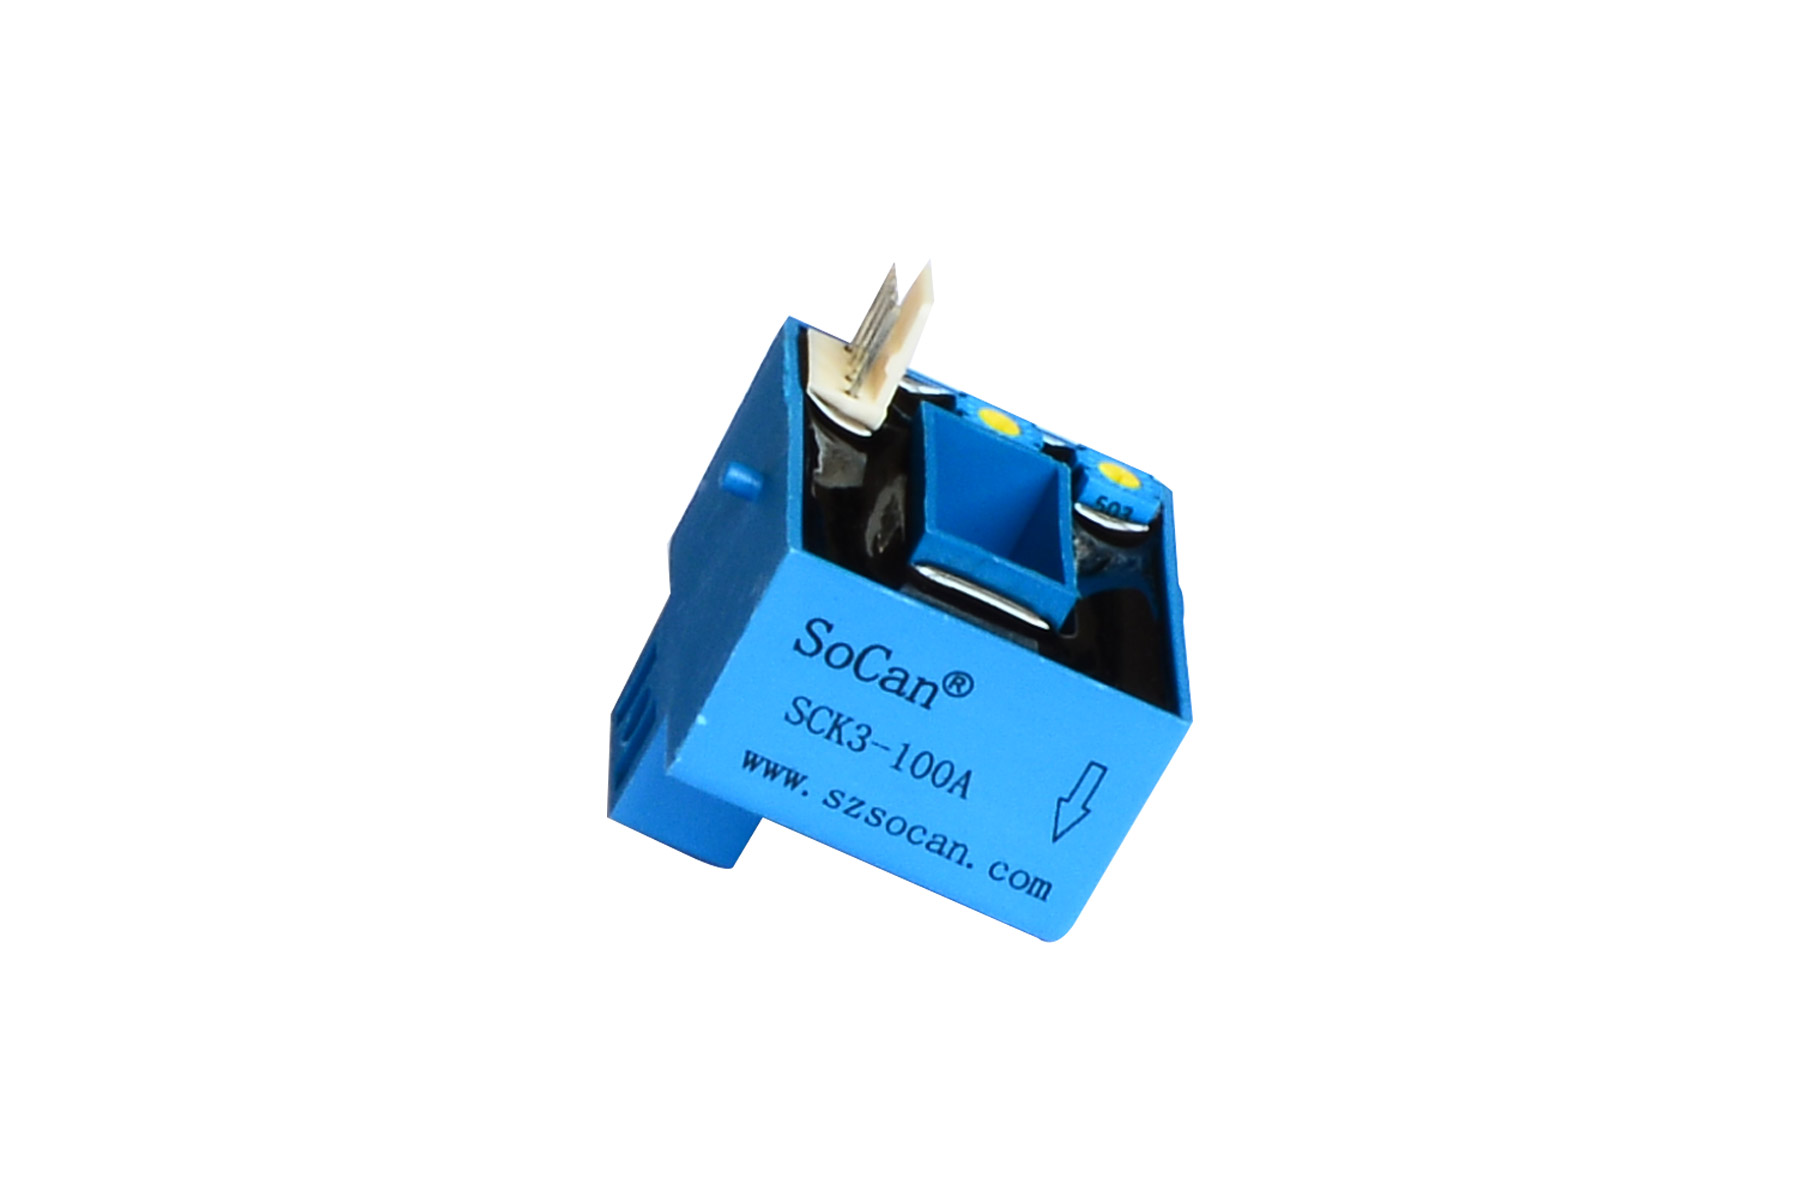 SCK3 Series high quality small size open loop hall dc voltage sensor